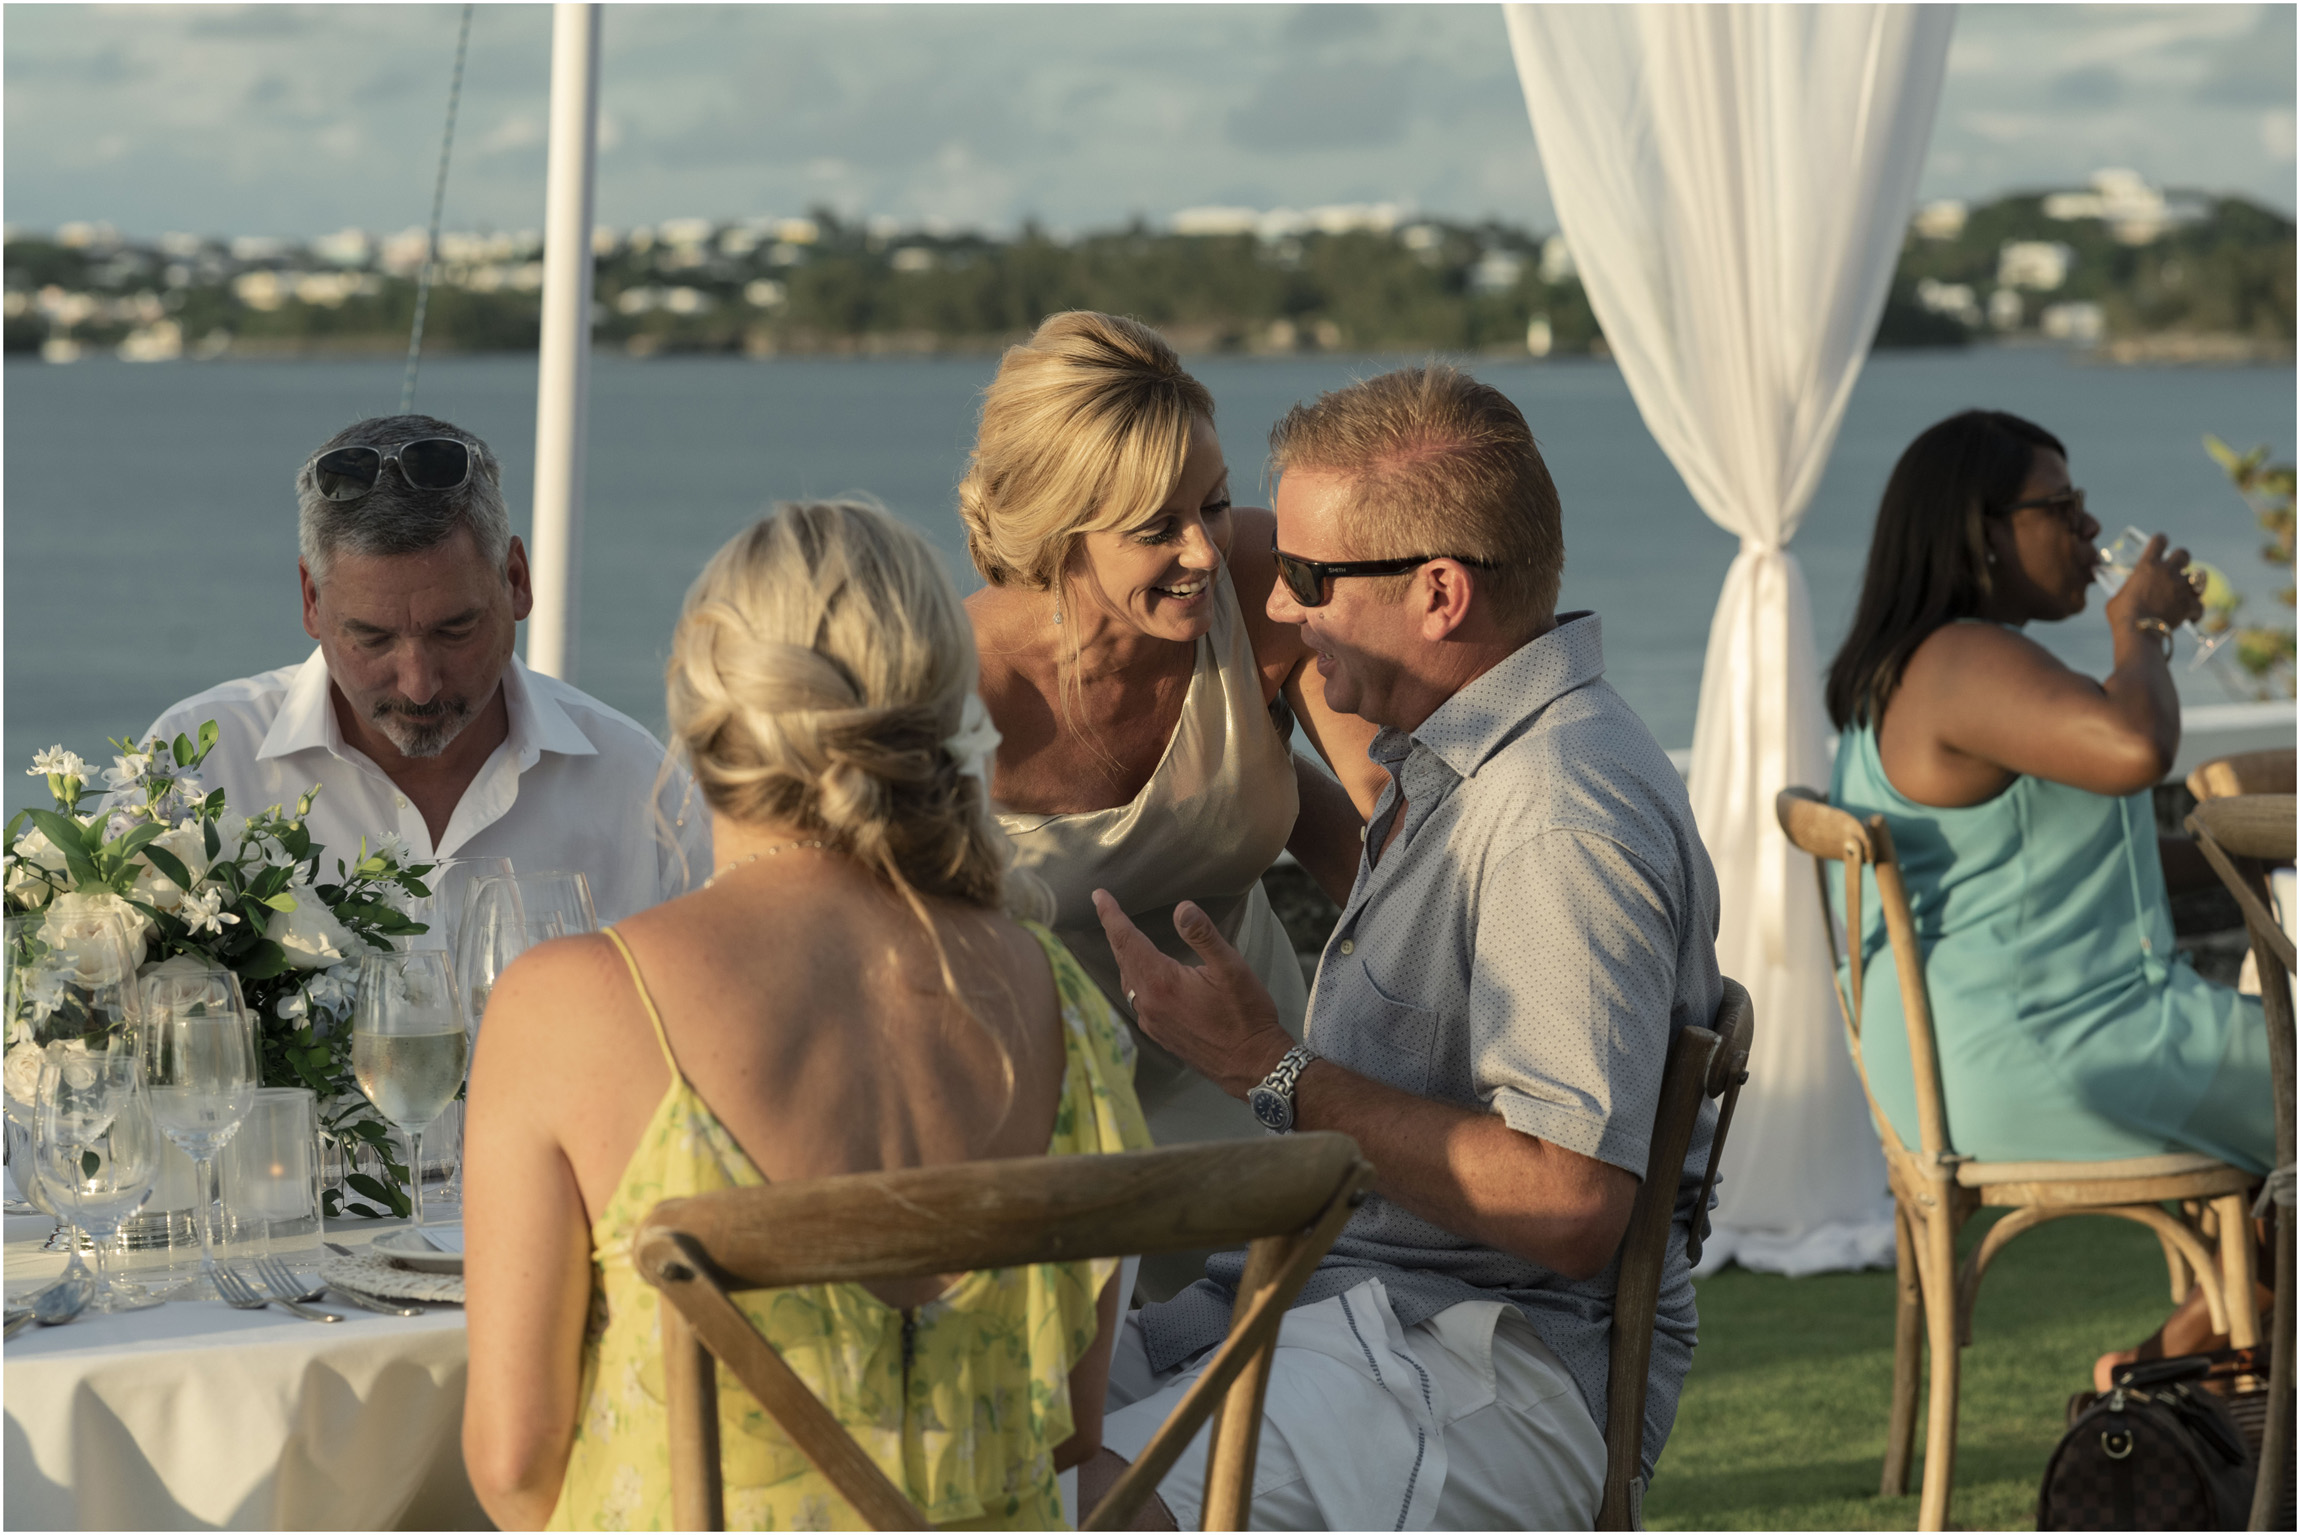 ©FianderFoto_Bermuda_Wedding_Photographer_Long_Island_Bermuda_Nancy_Ray_097.jpg